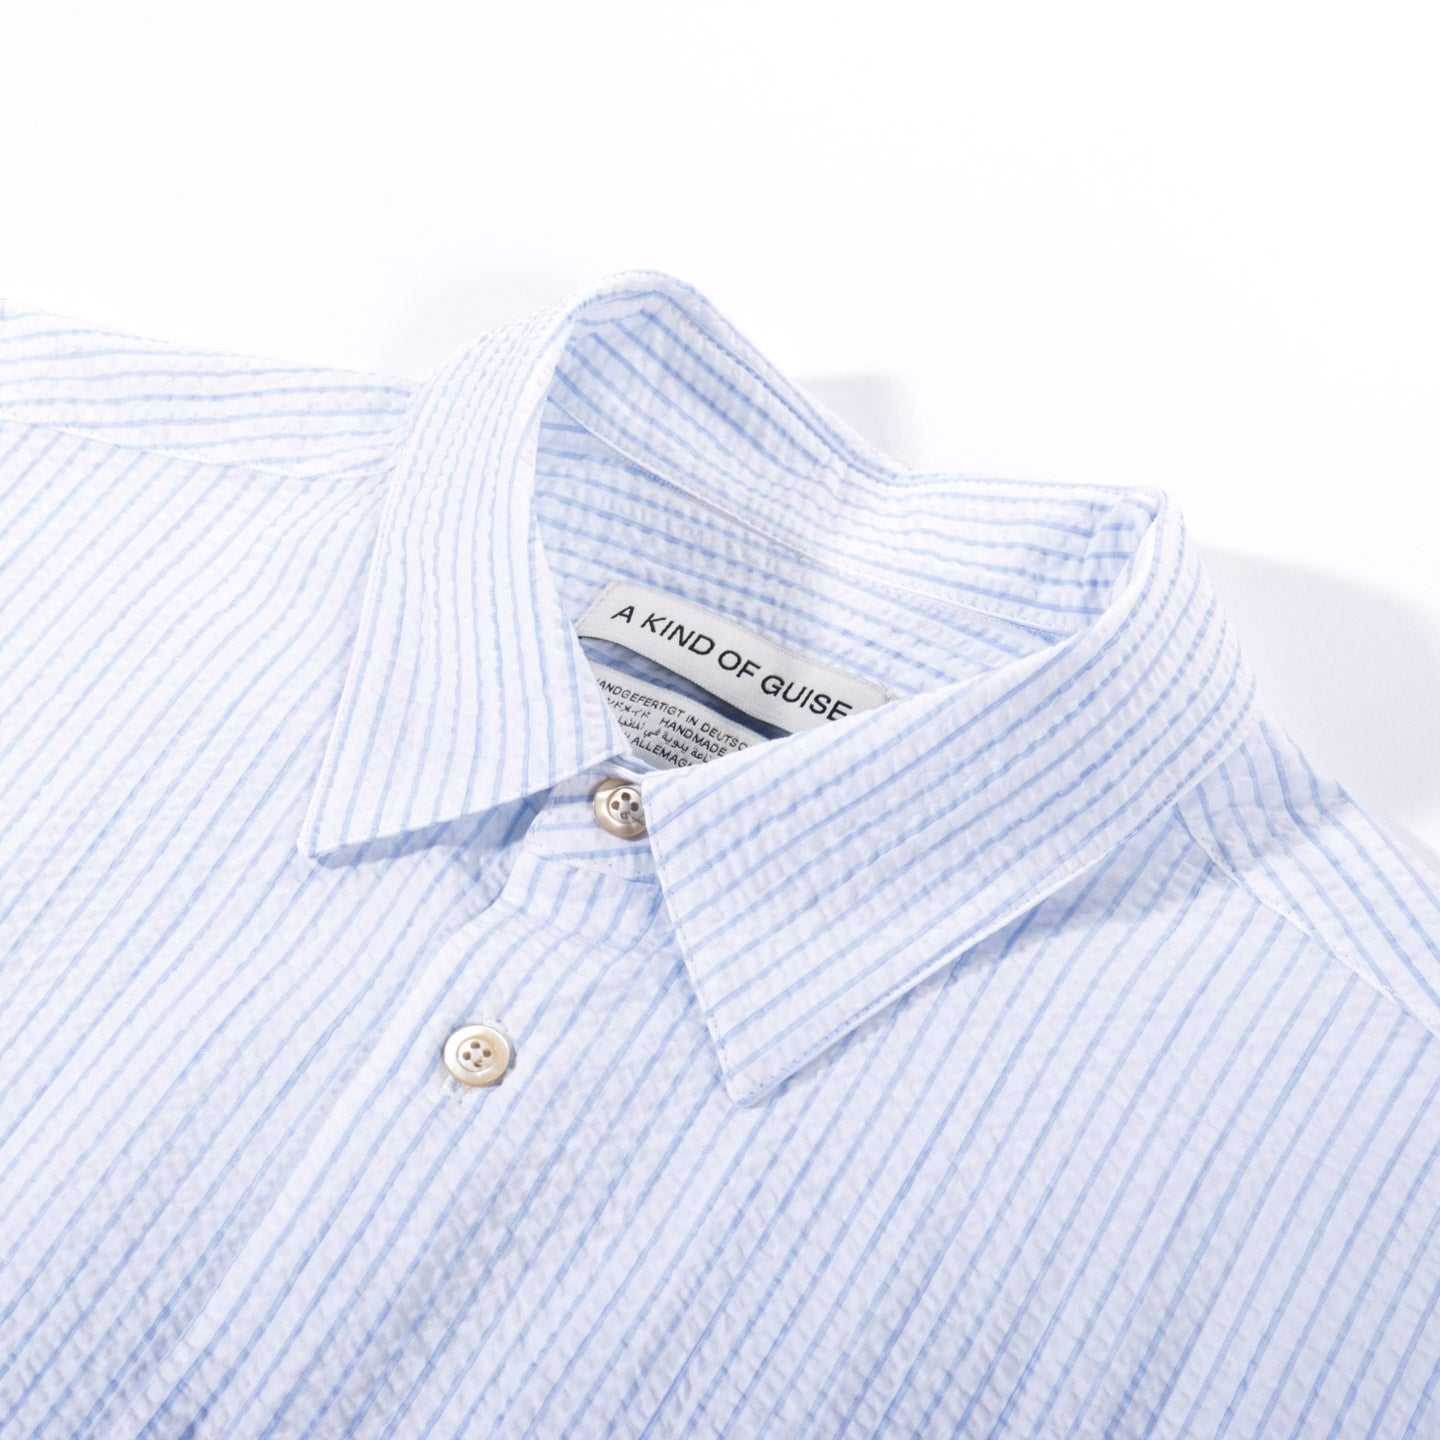 A KIND OF GUISE FLORES SHIRT MORNING STRIPE